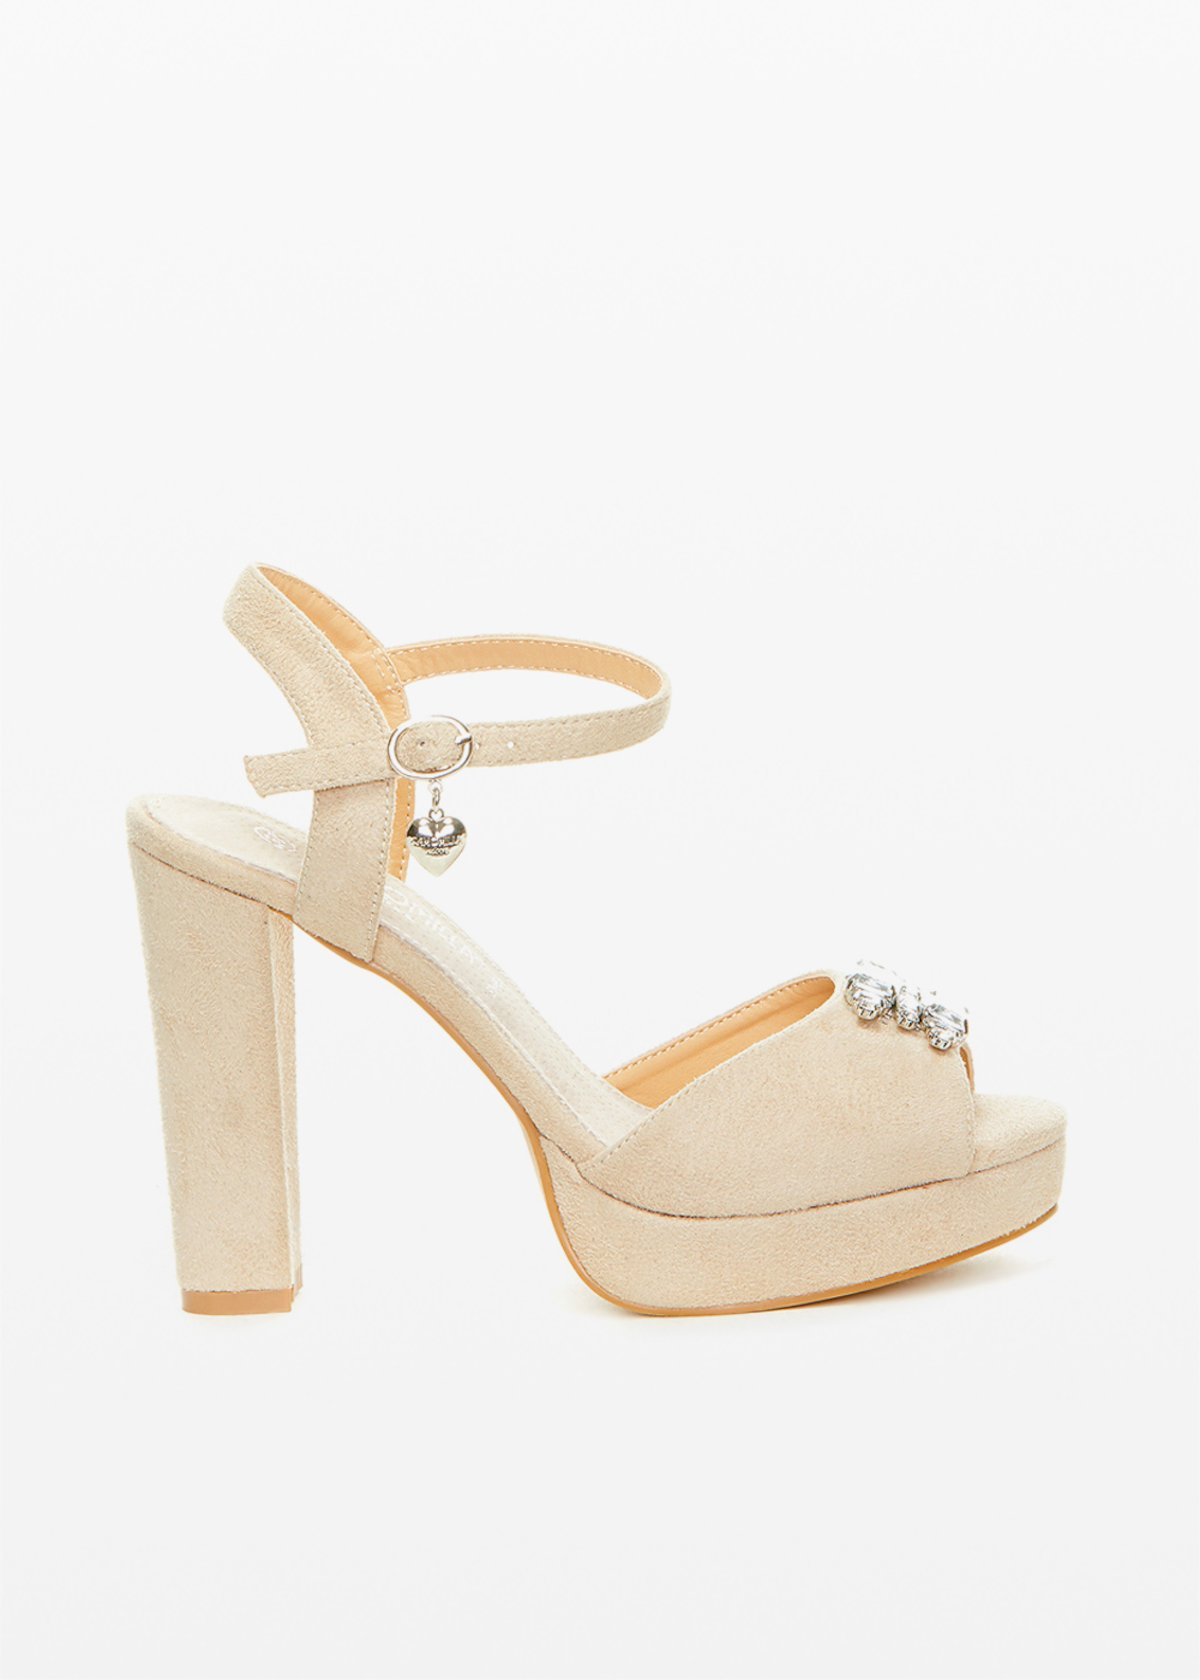 Selma sandals with jewel detail - Doeskin - Woman - Category image